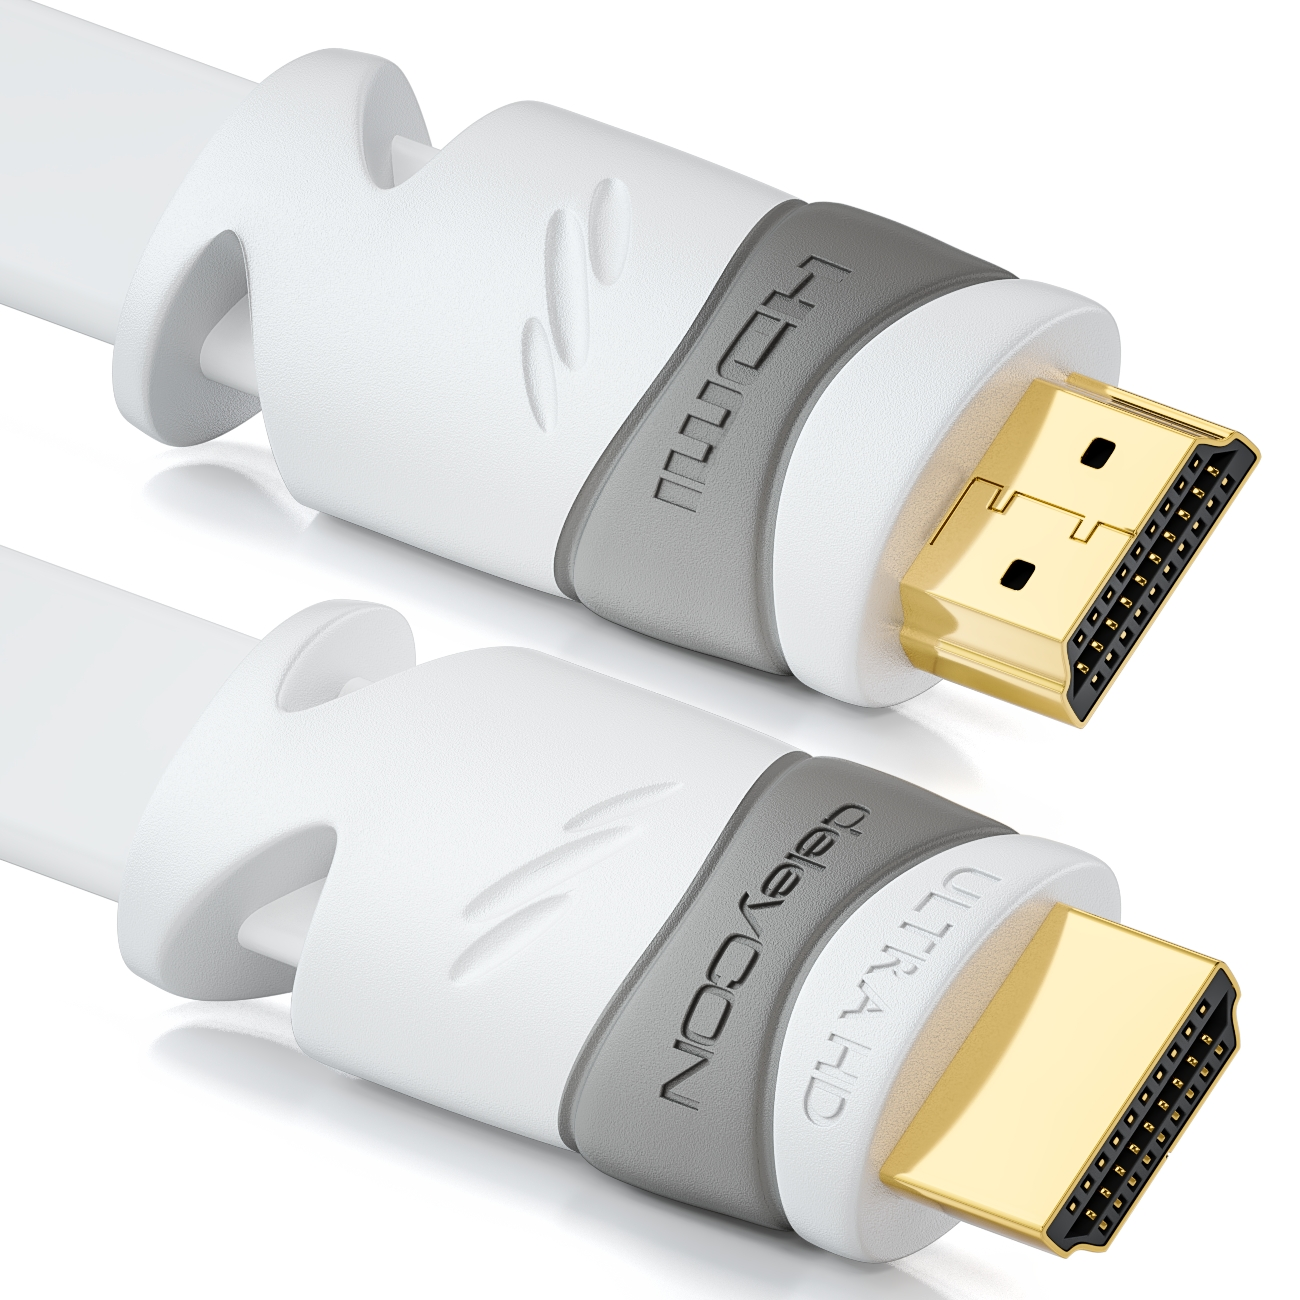 HDMI Kabel Archives | deleyCON deleyCON